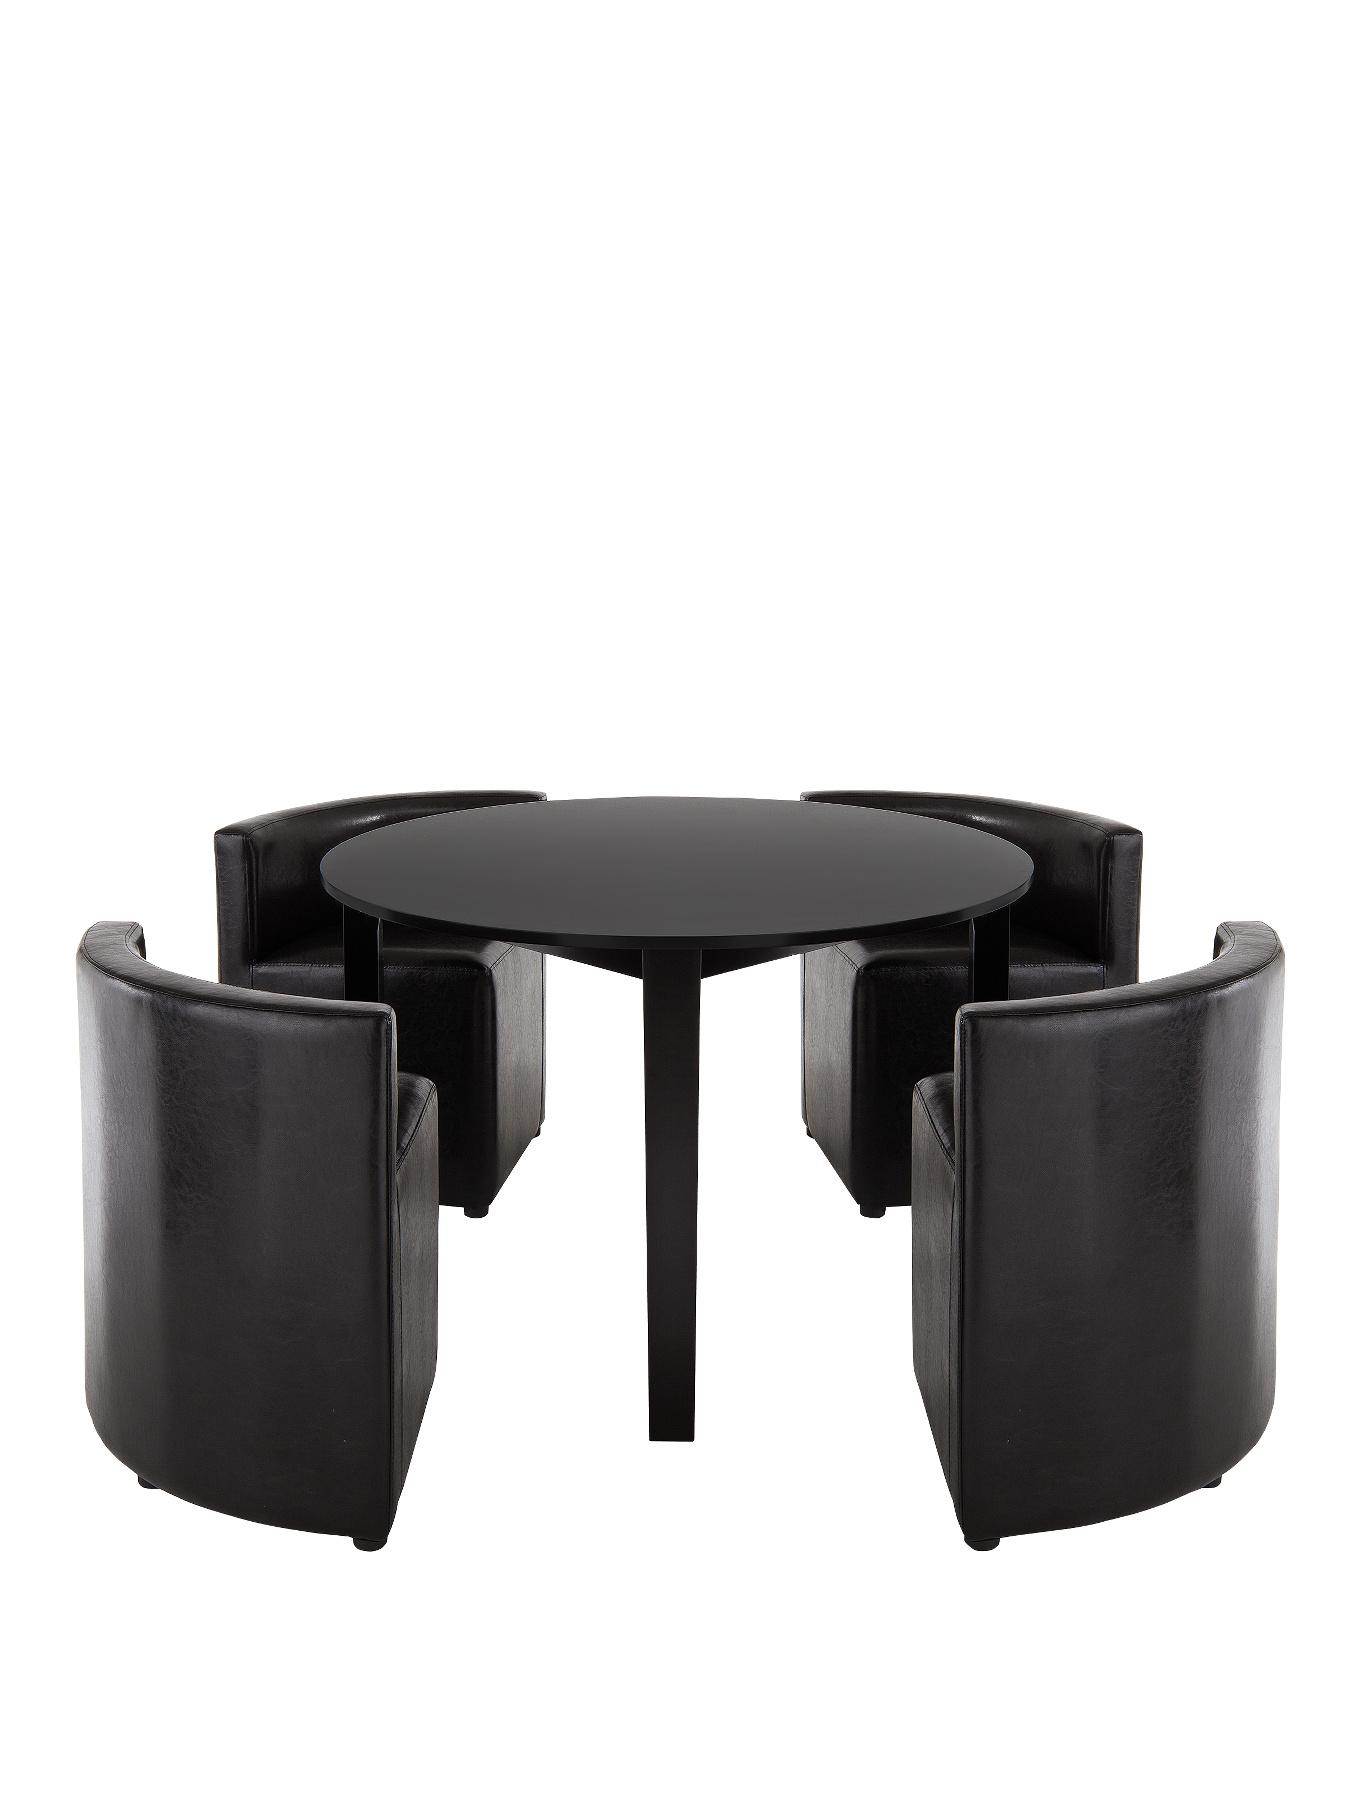 Buy Cheap Space Saving Dining Table Compare Furniture Prices For Best UK Deals